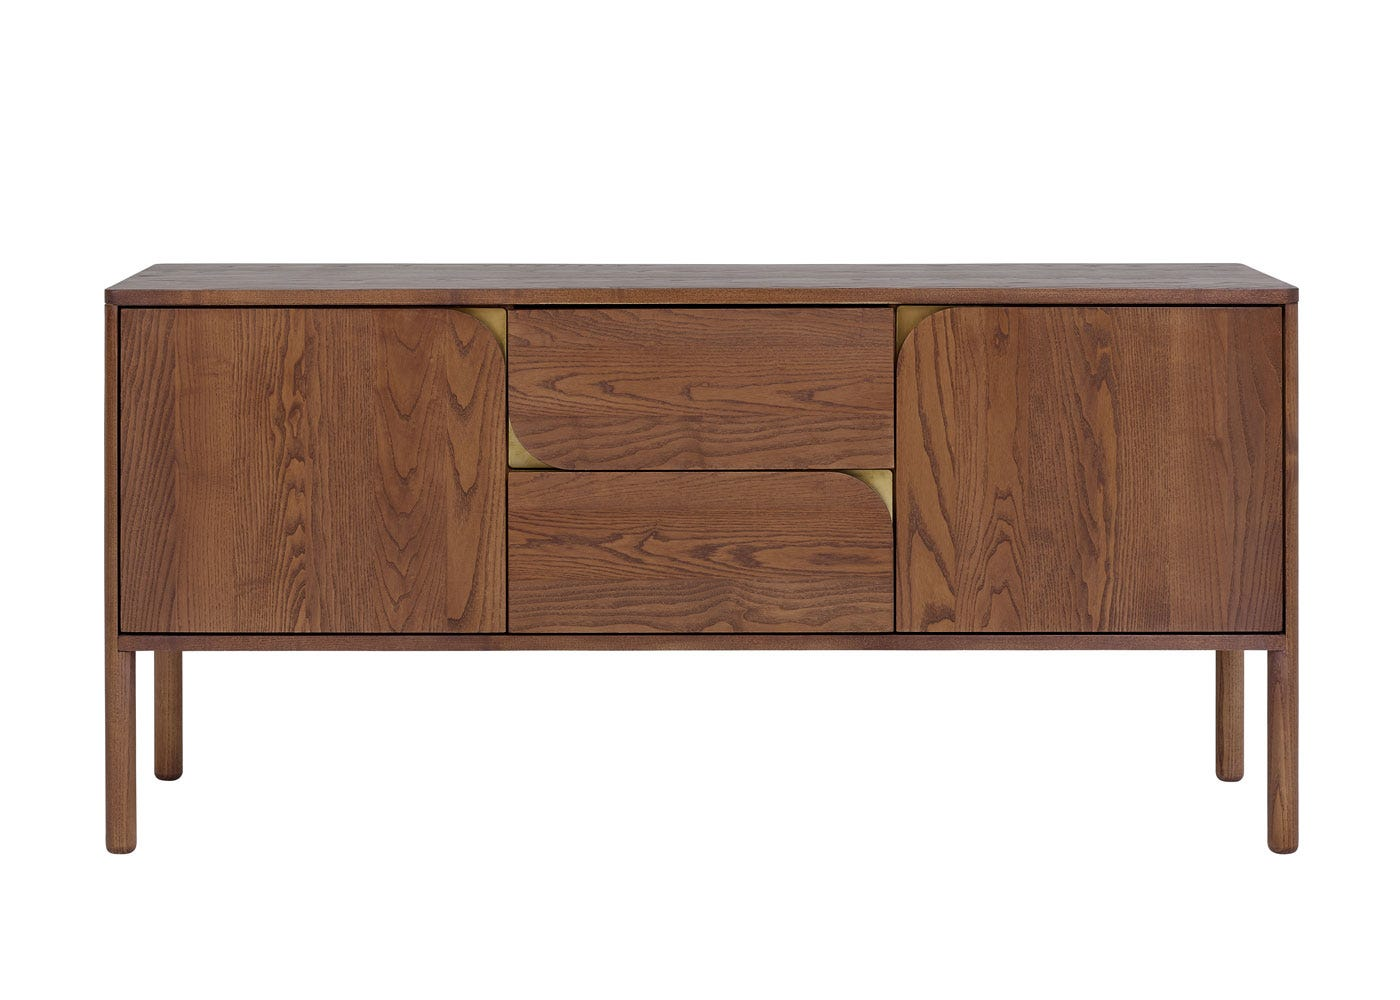 As shown: Verso Sideboard Large Dark Wood - Front profile.